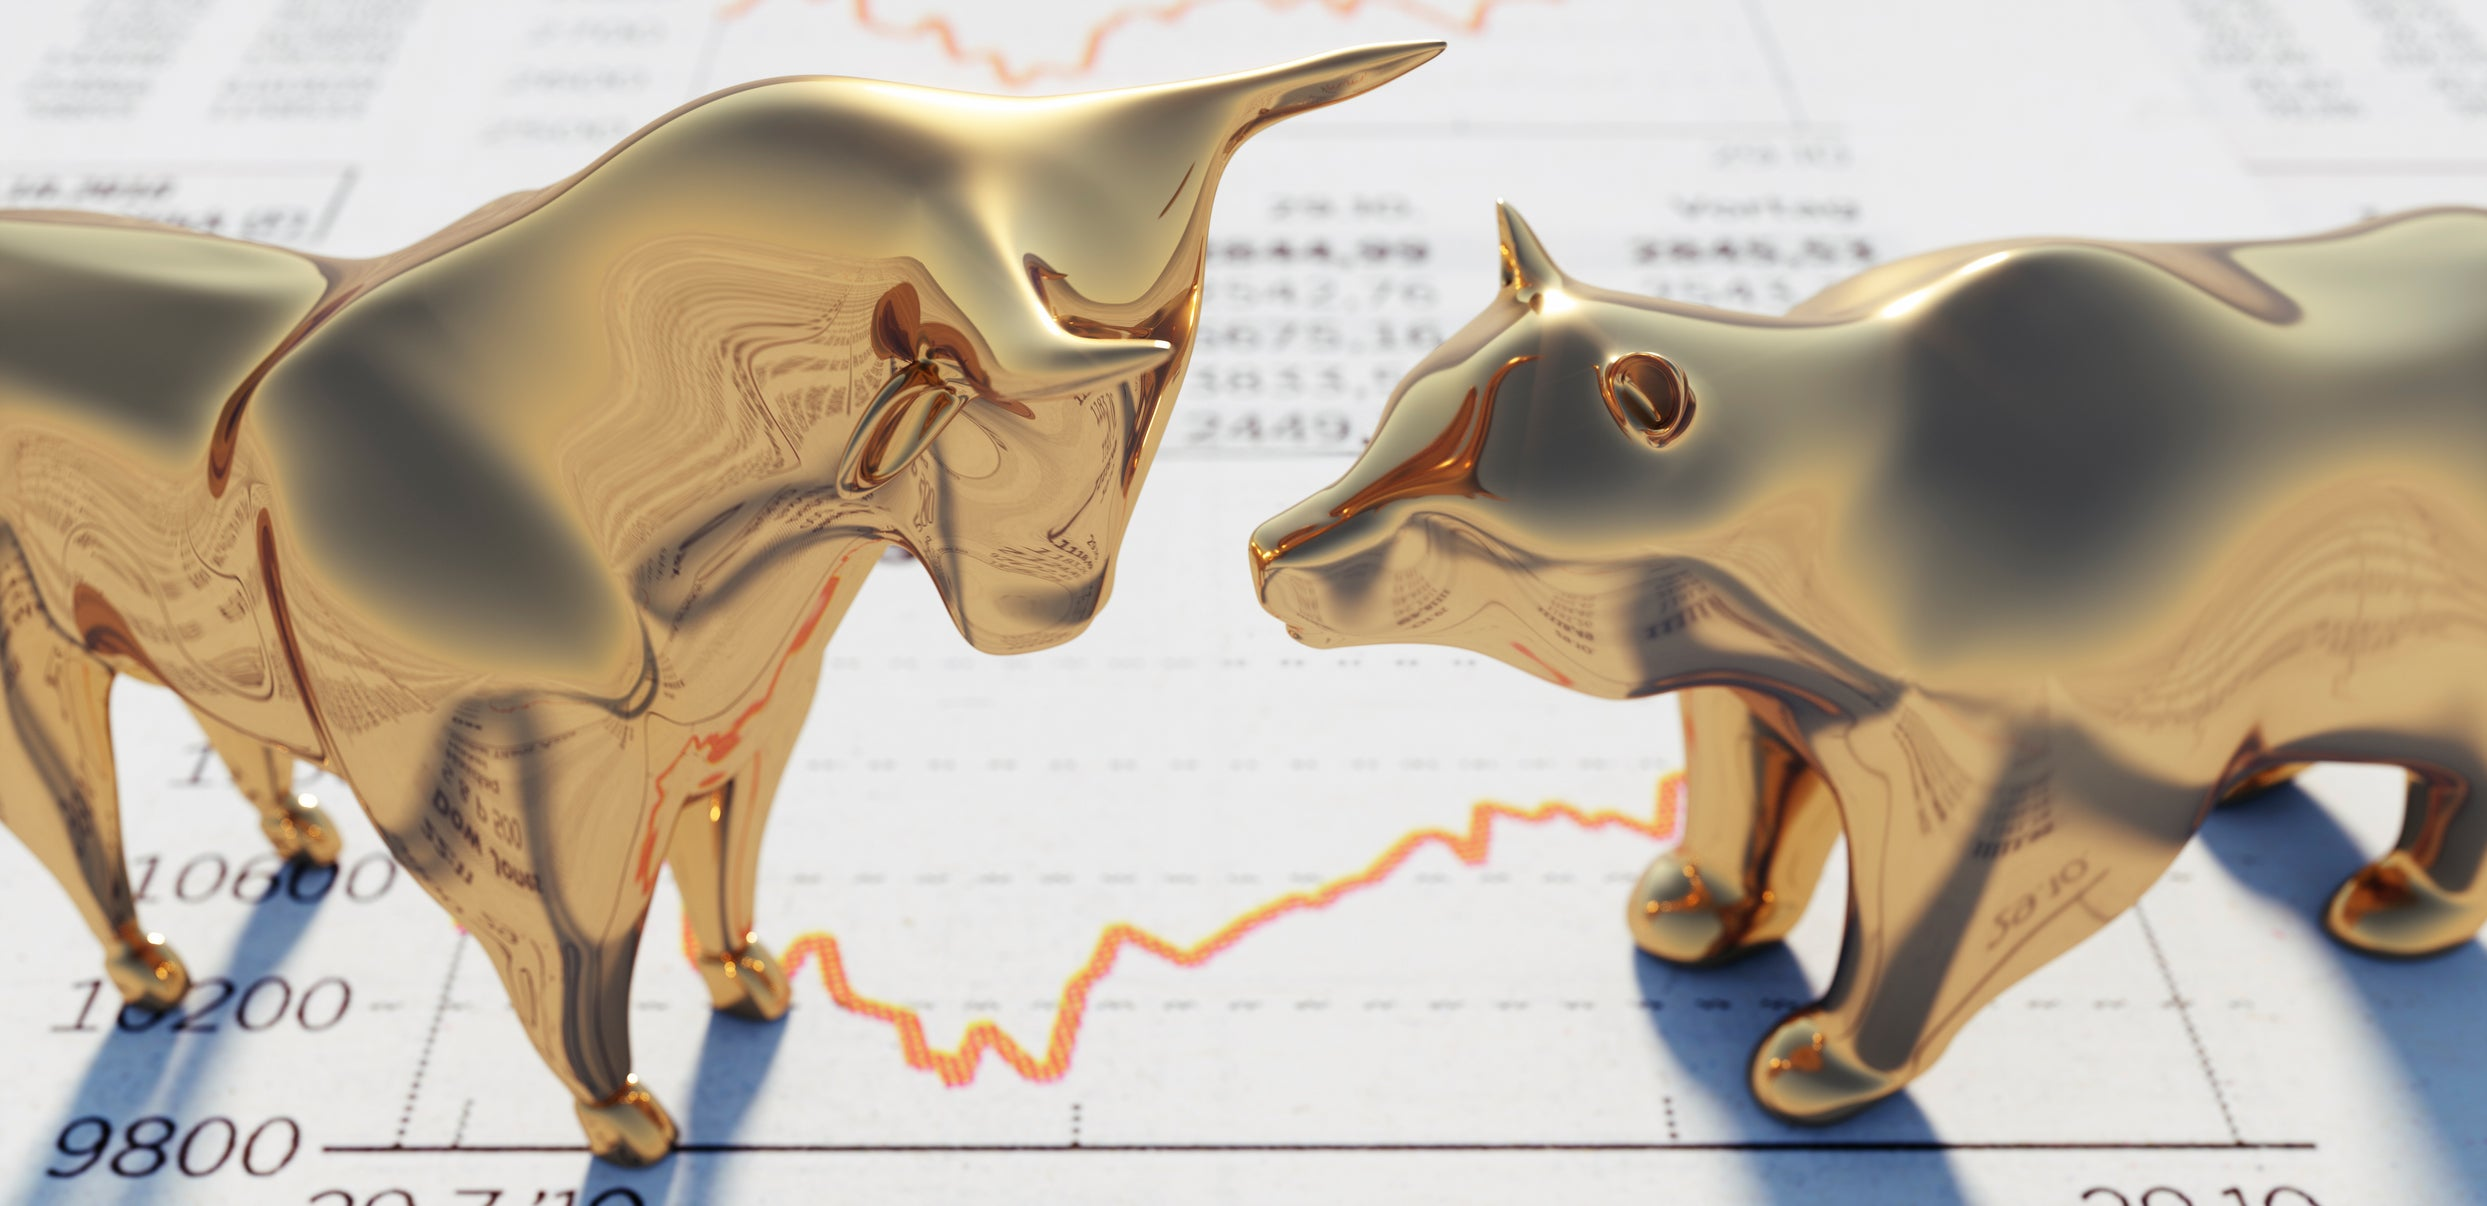 3 Charts to Understand the State of the Market | The Motley Fool